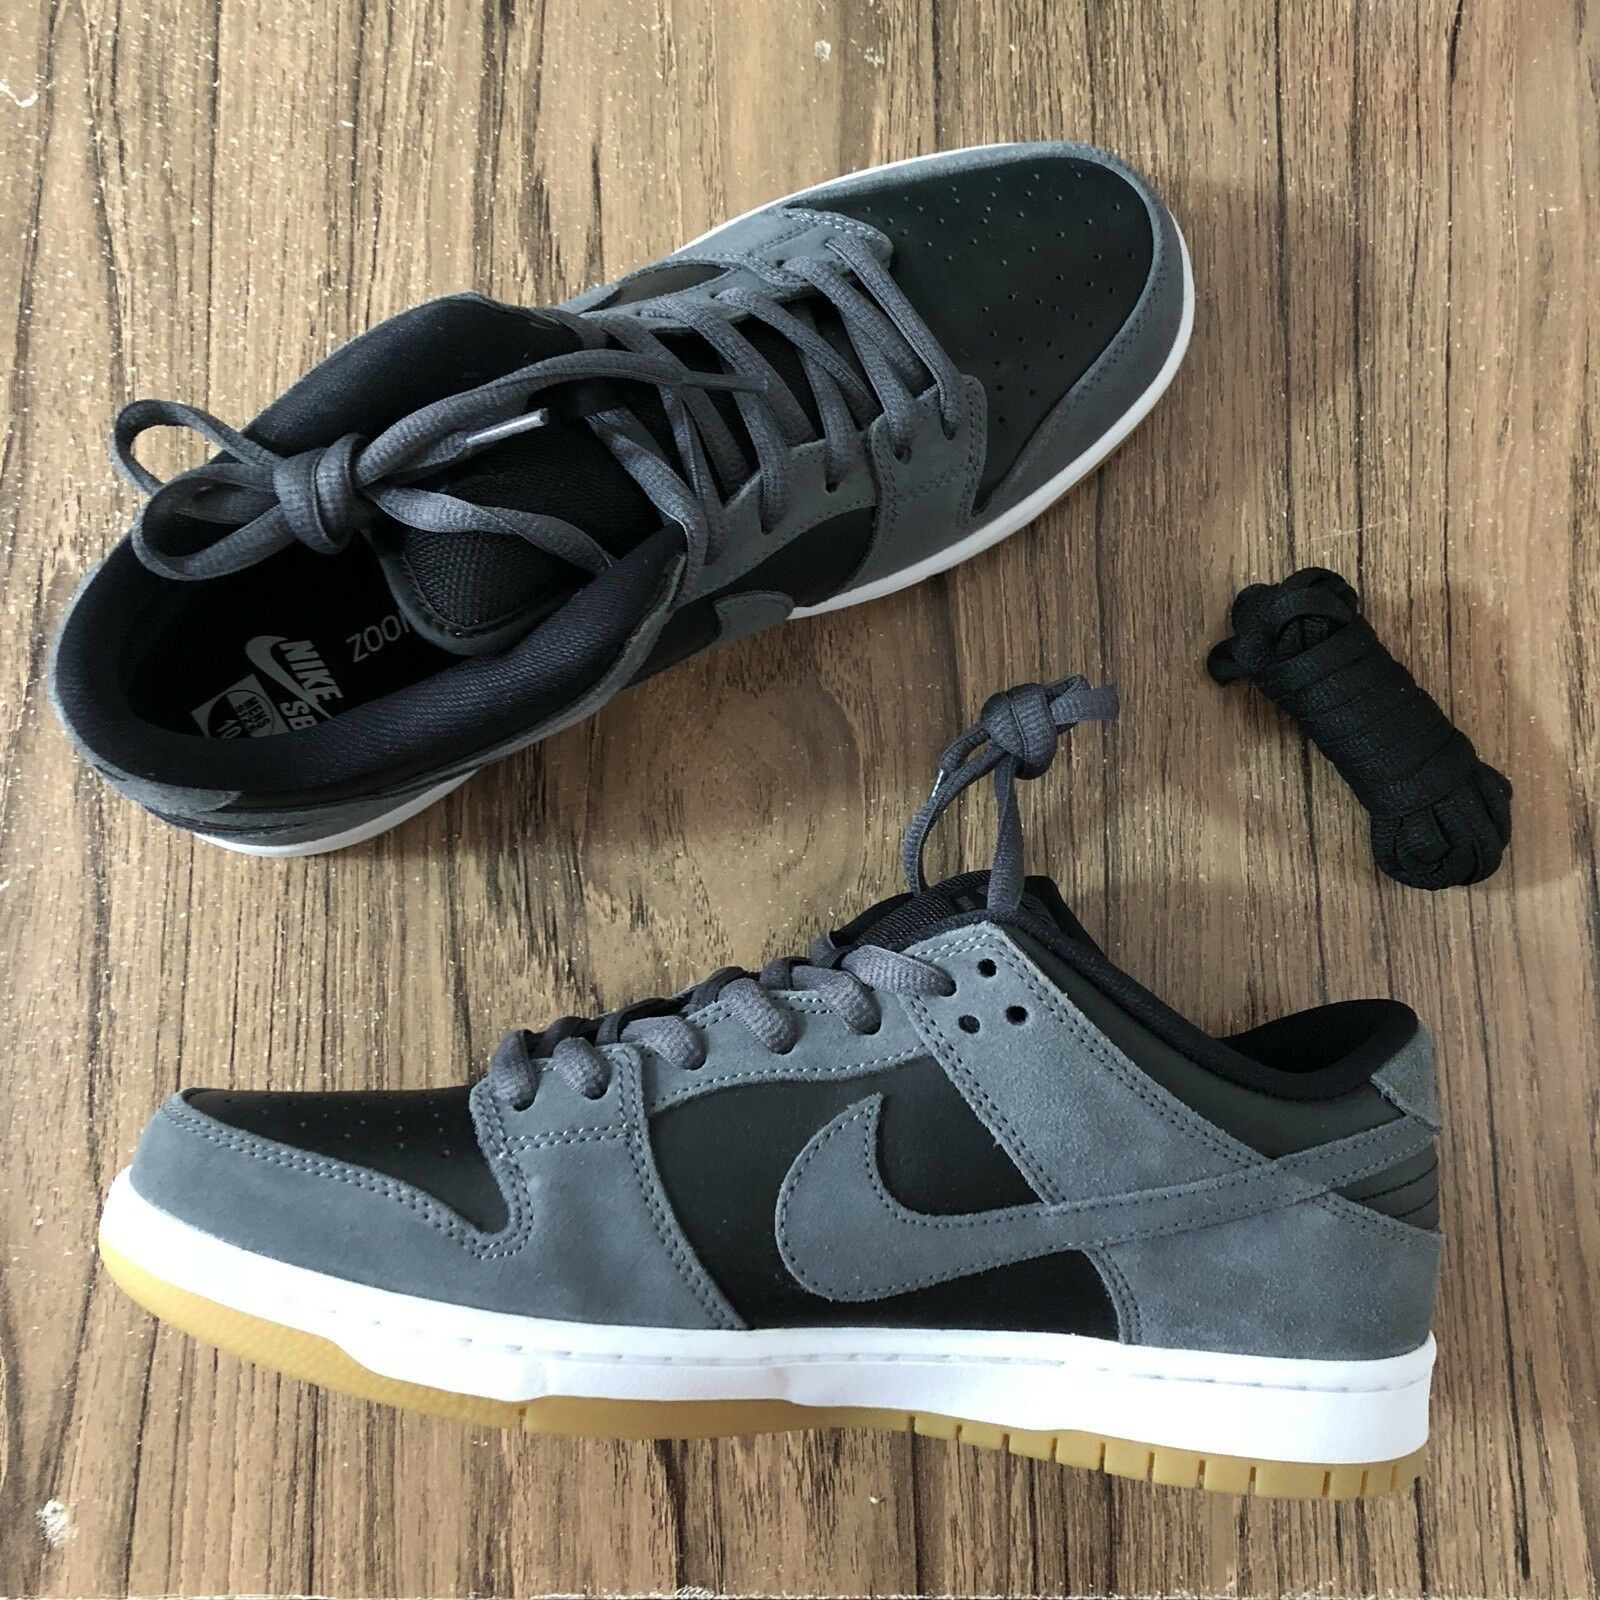 f222621f5d8c A597 Nike SB Dunk Low TRD TRD TRD AR0778-001 Mens Size 10 Skate Shoes